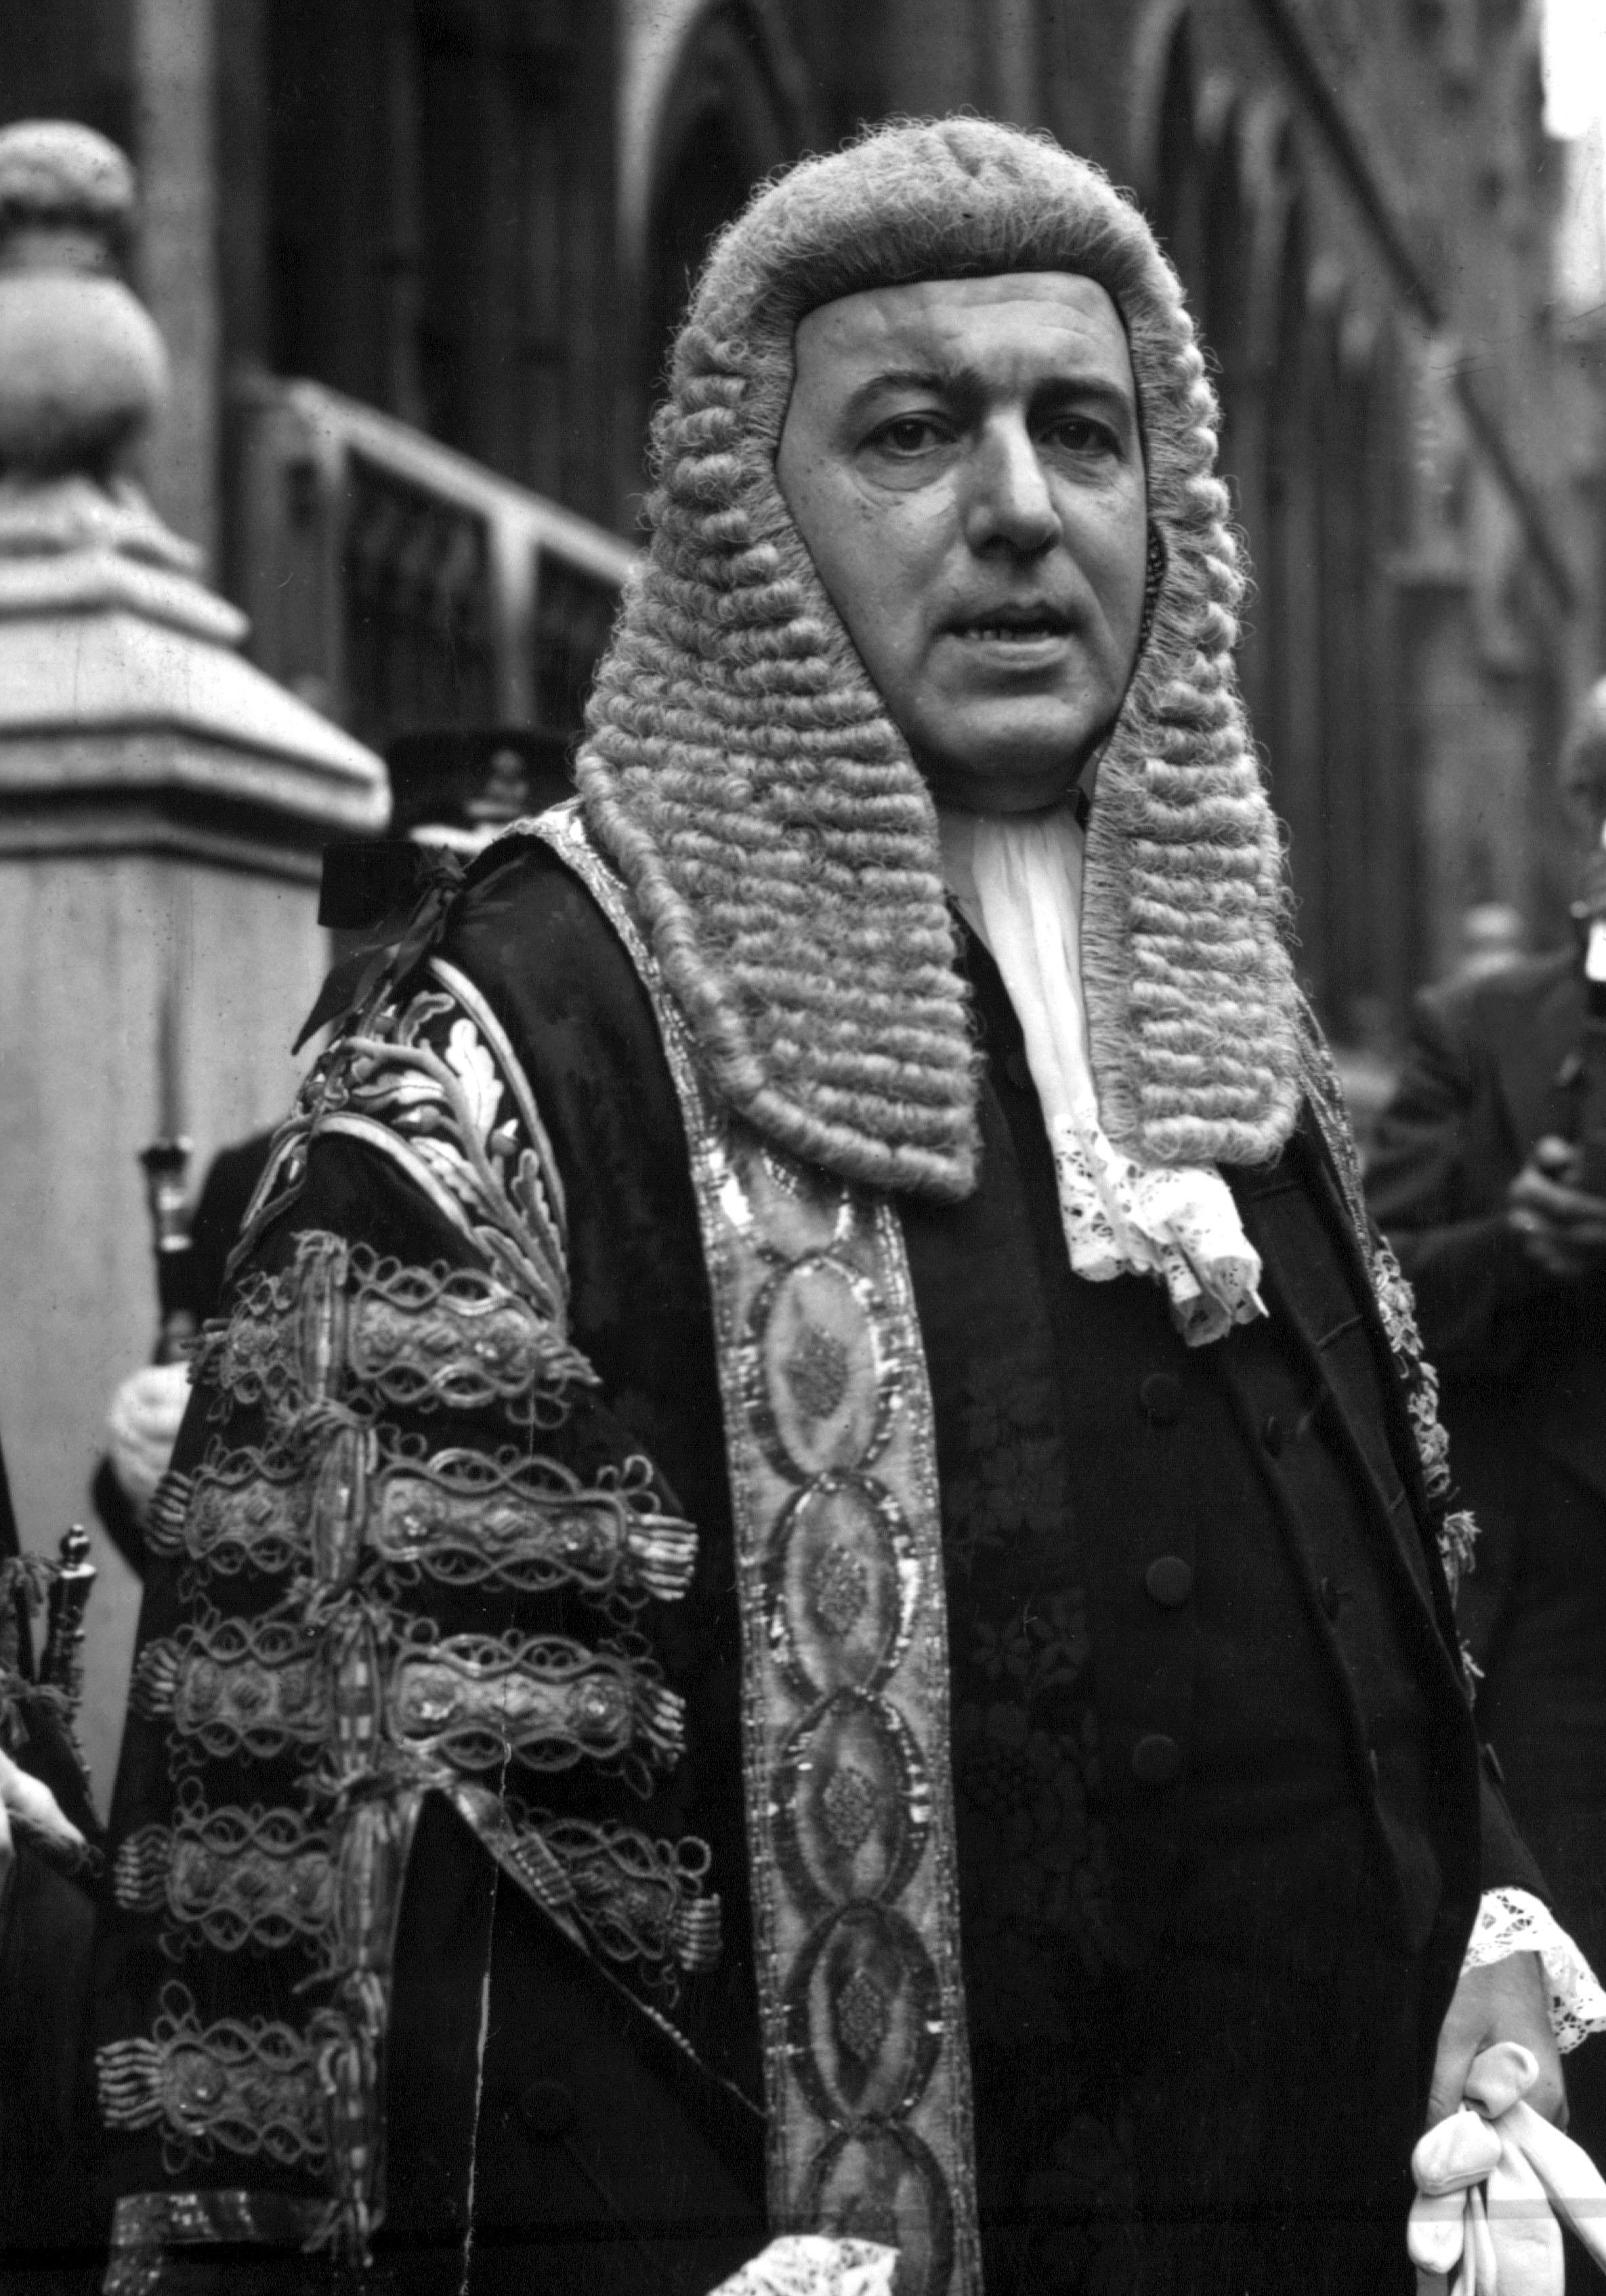 Home Secretary, Sir David Maxwell Fyfe